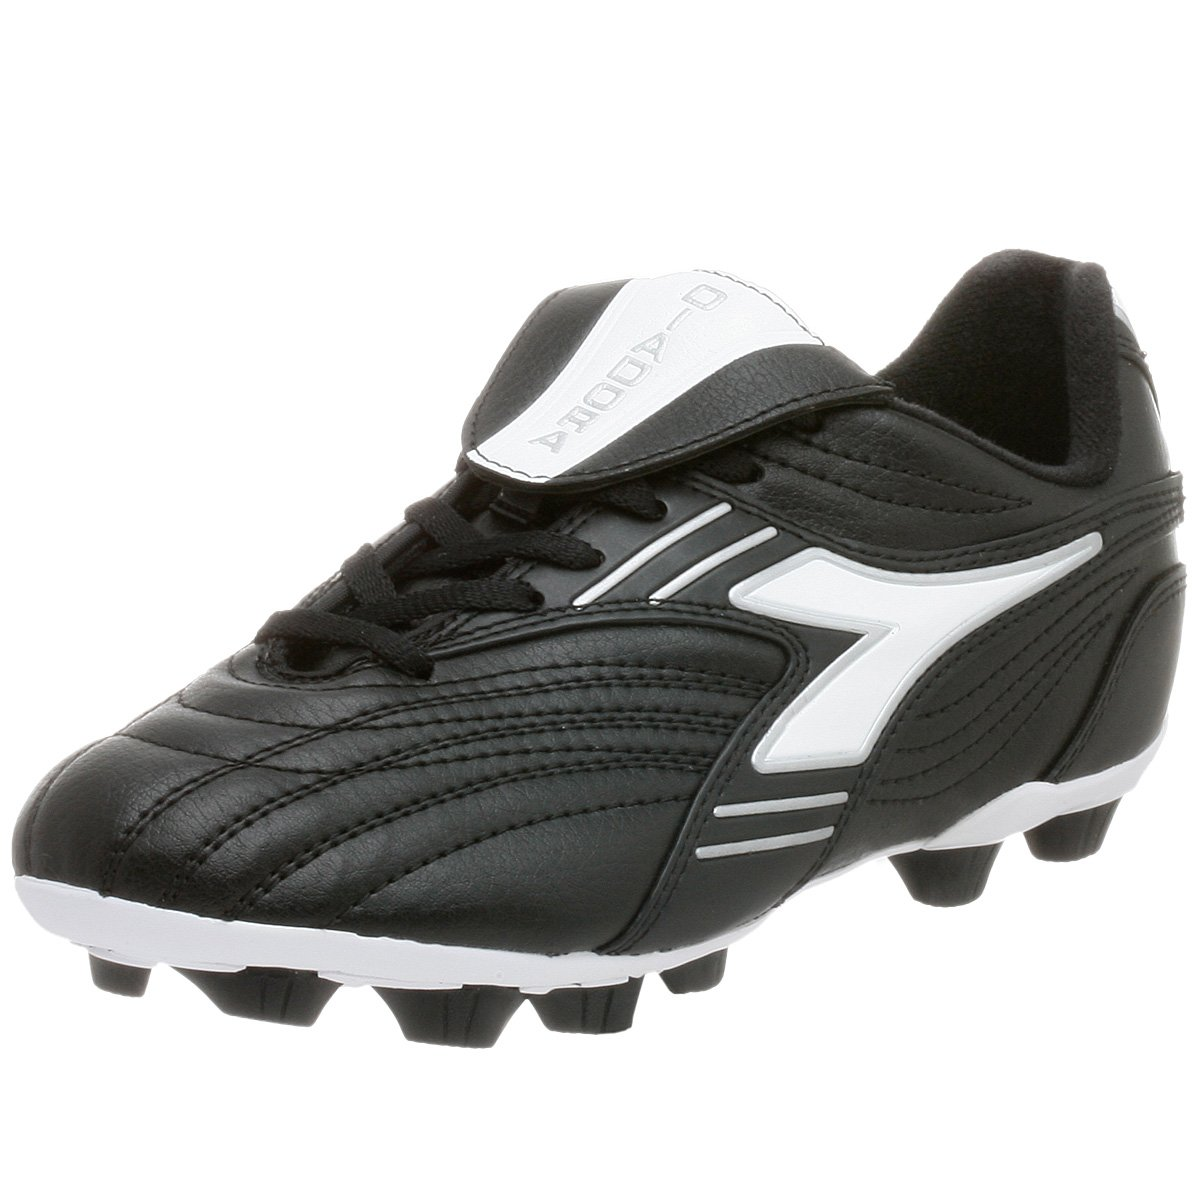 5c0b7641ae8b Amazon.com | Diadora Little Kid Monza MD Soccer Cleat | Soccer